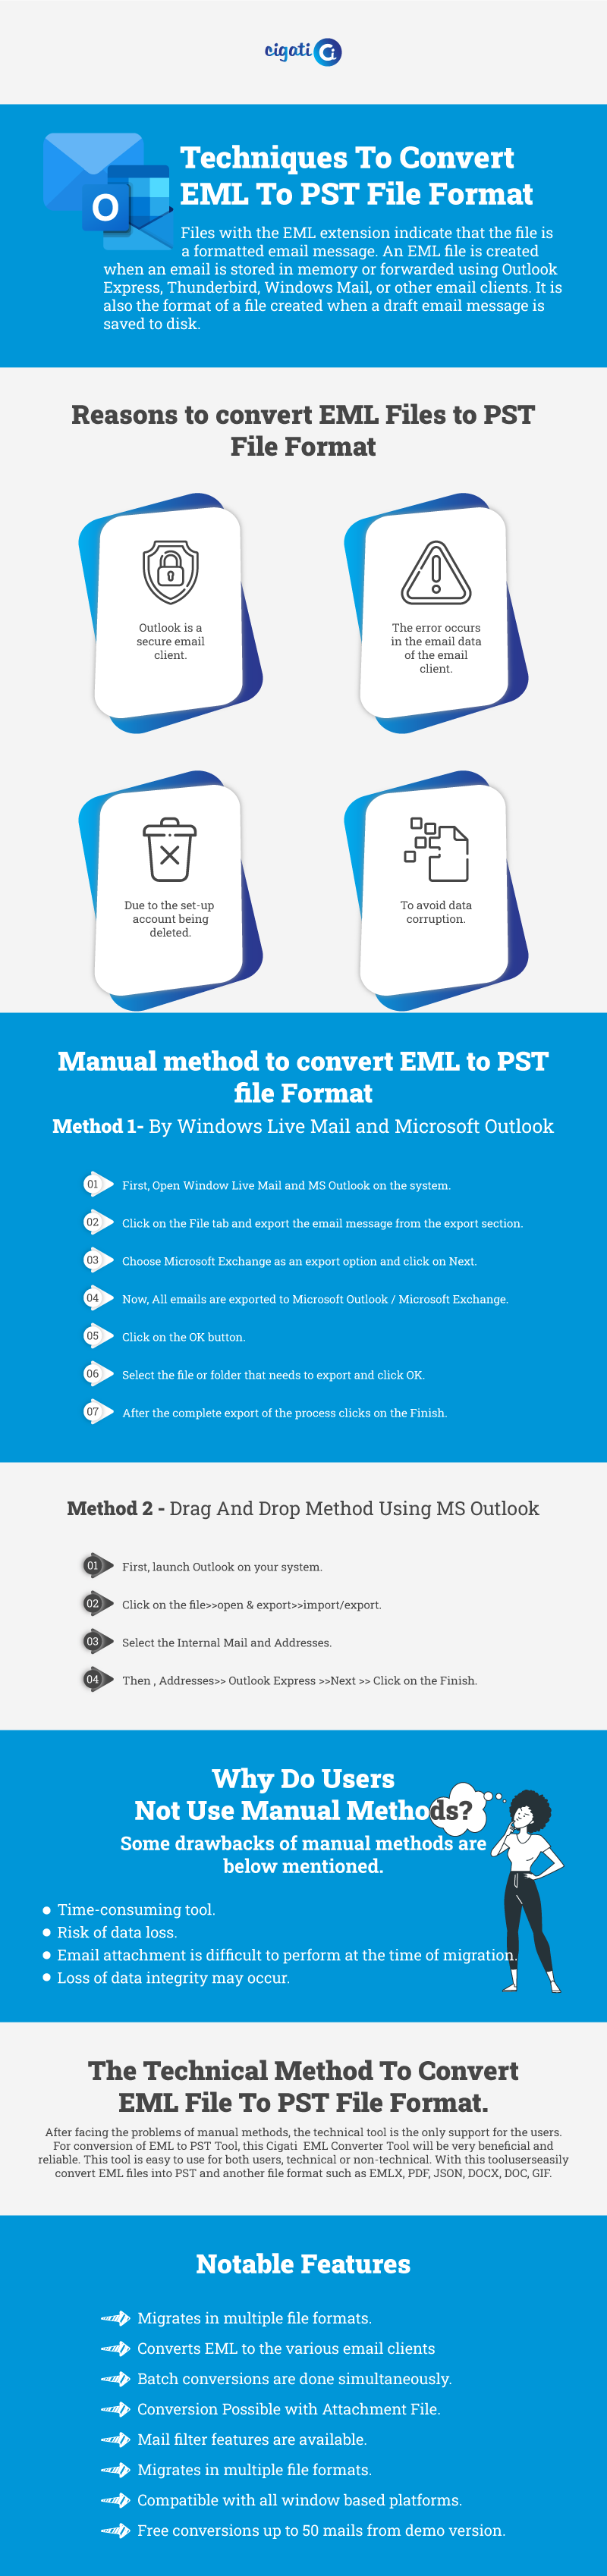 RE: How to import EML to PST Format?